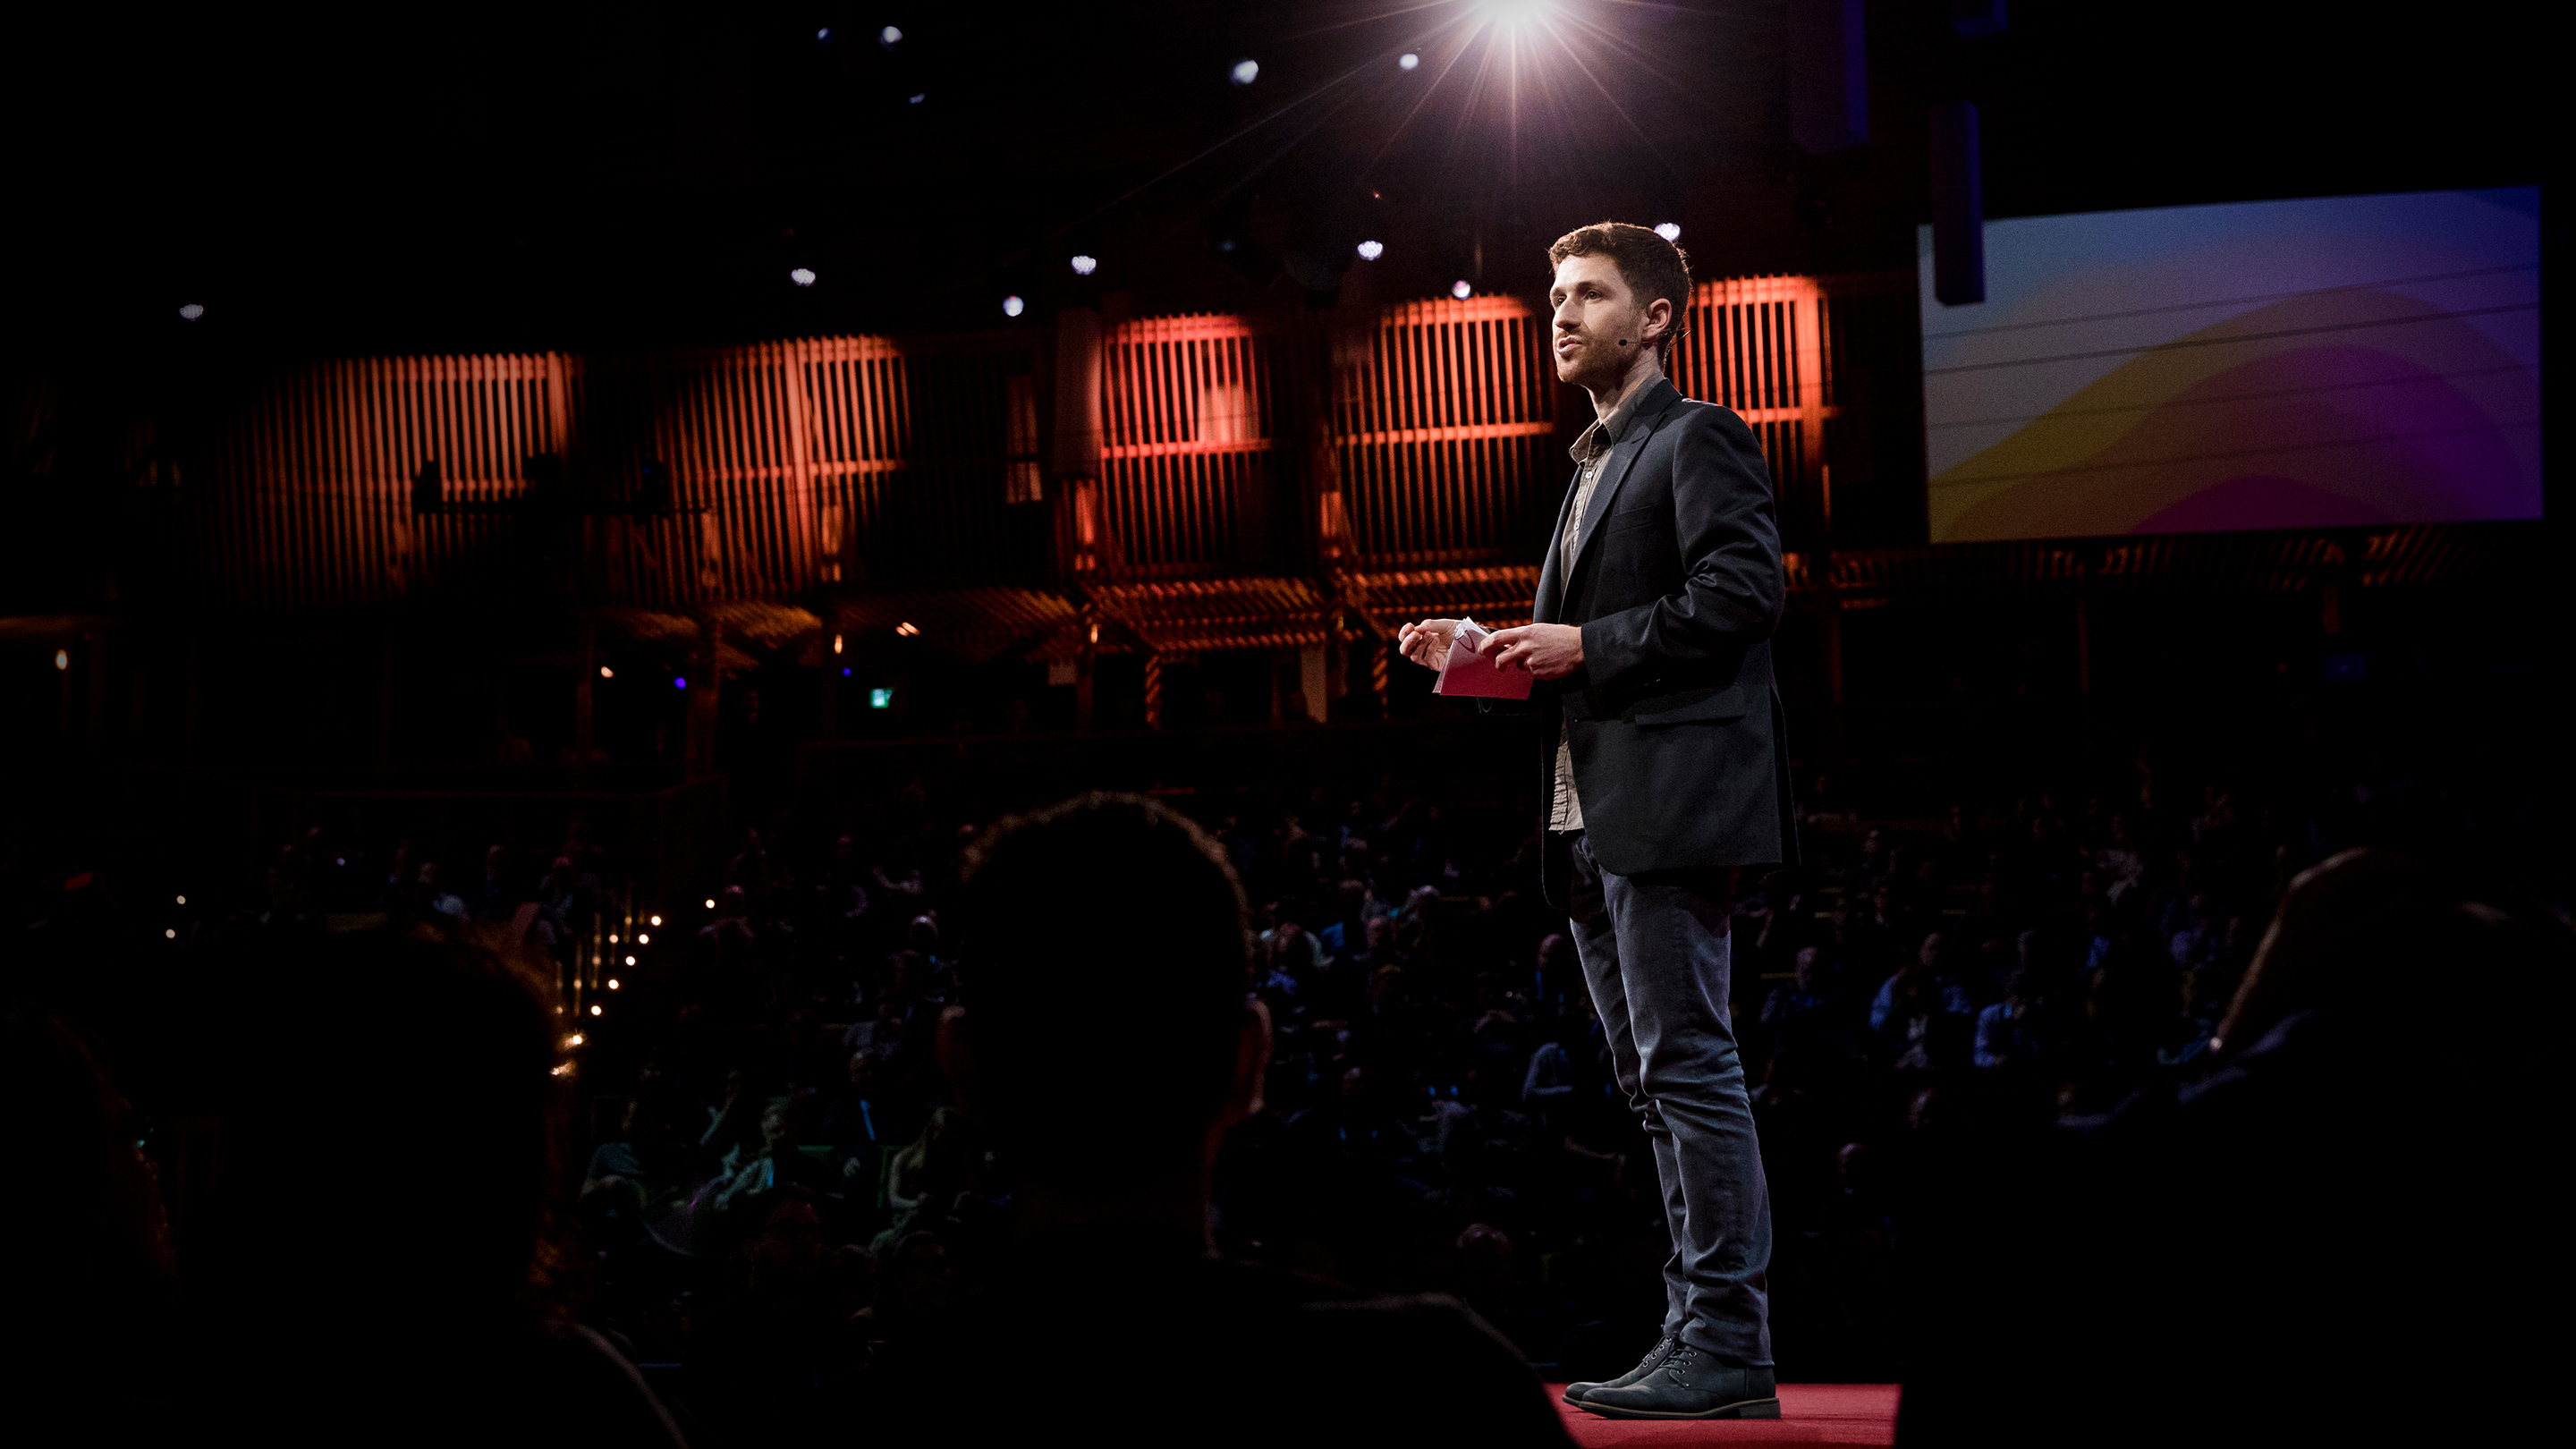 Ted talks jewish online dating